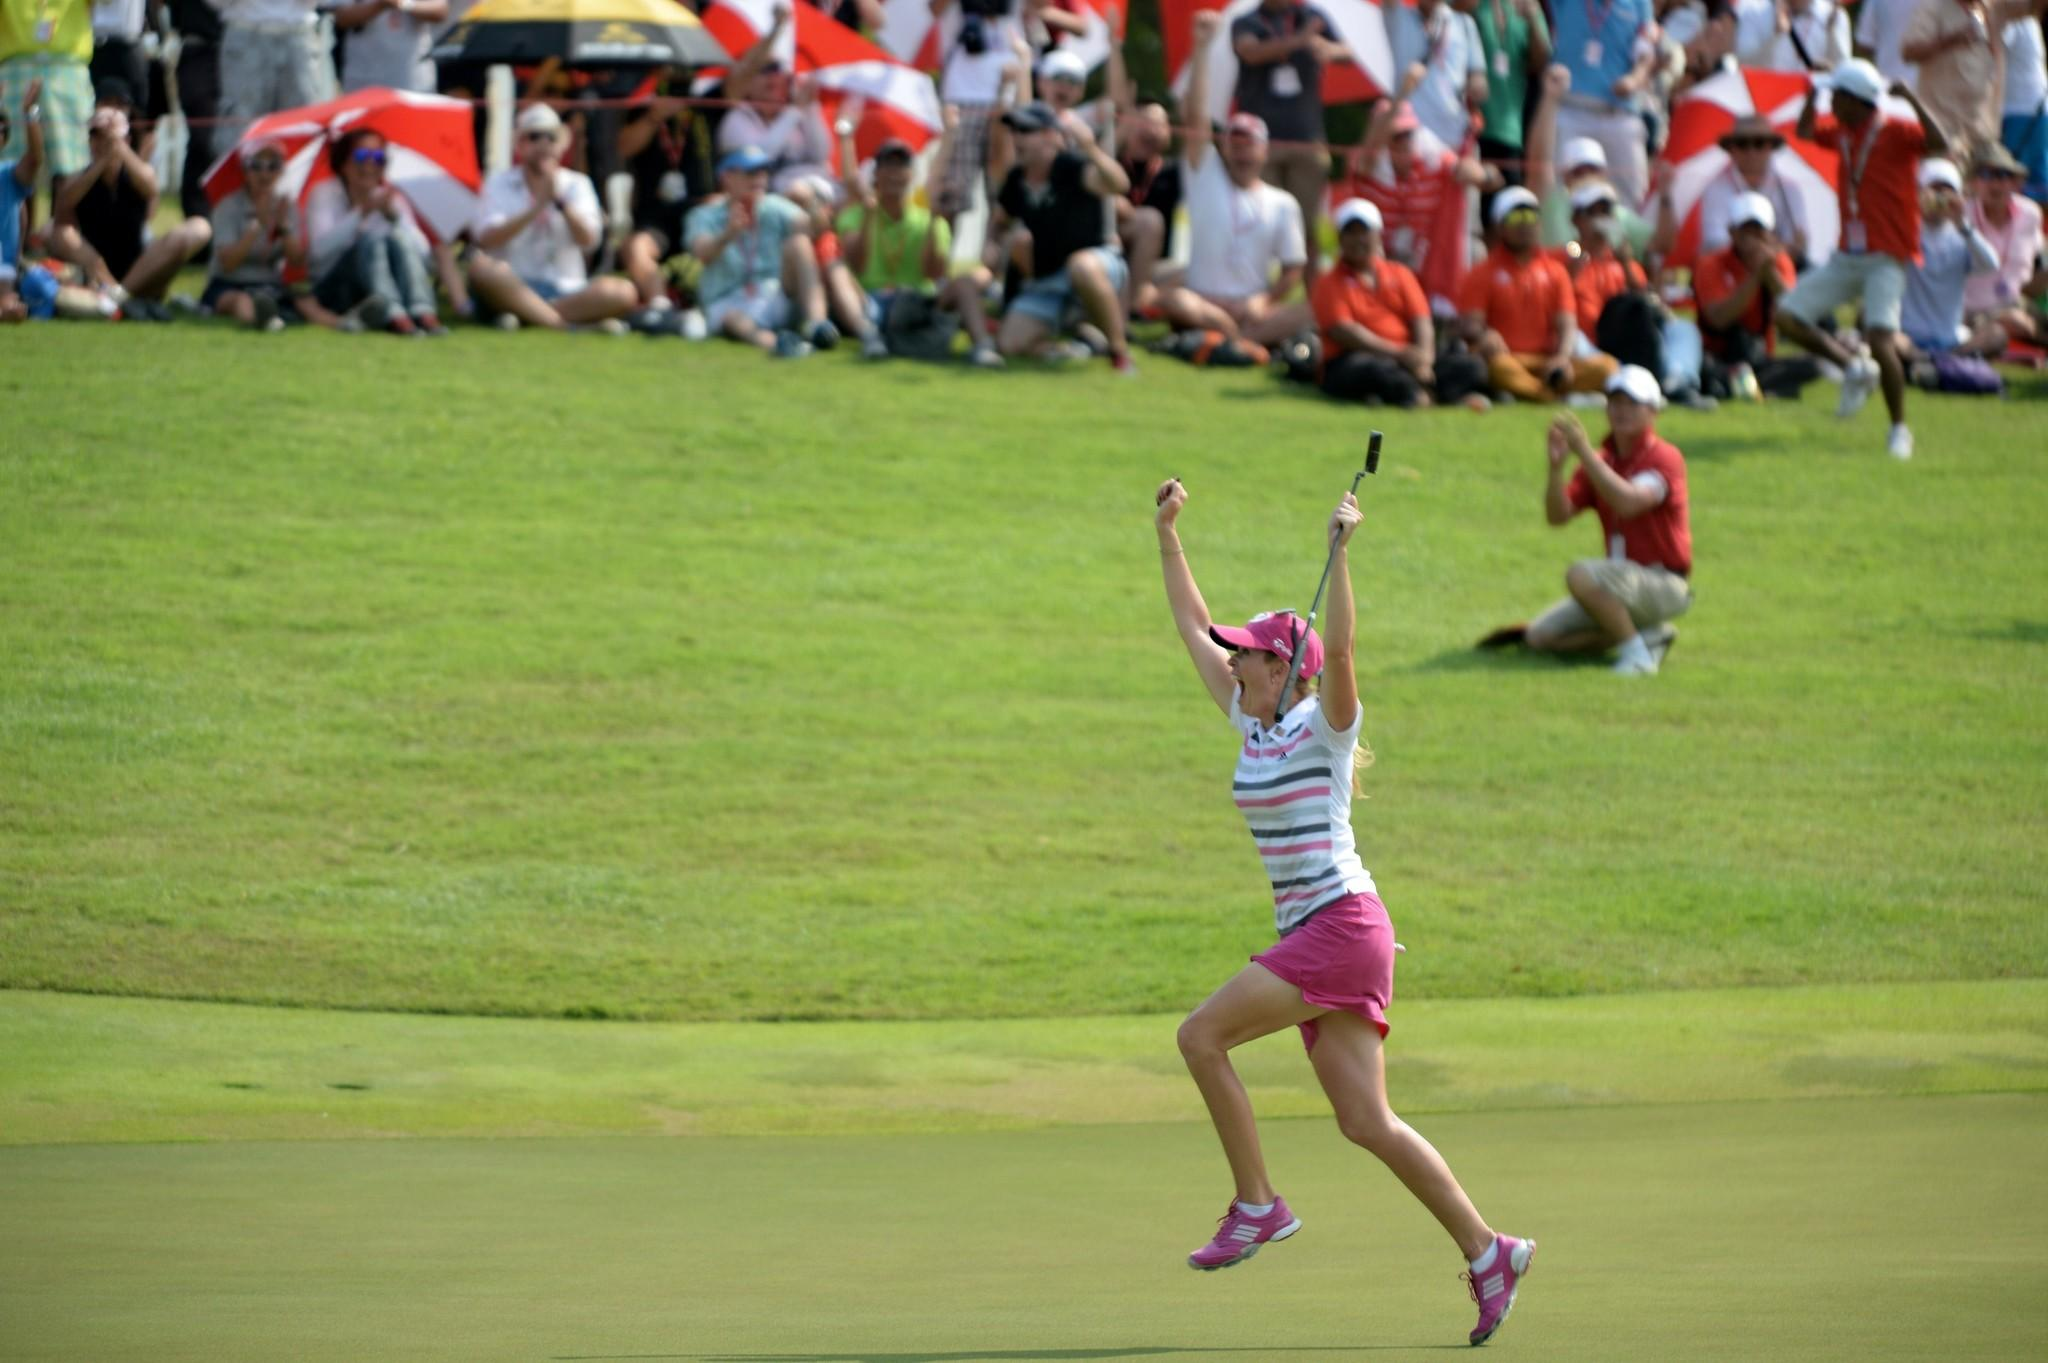 Paula Creamer reacts after winning the final round of the 2014 HSBC Women's Champions golf tournament in Singapore.